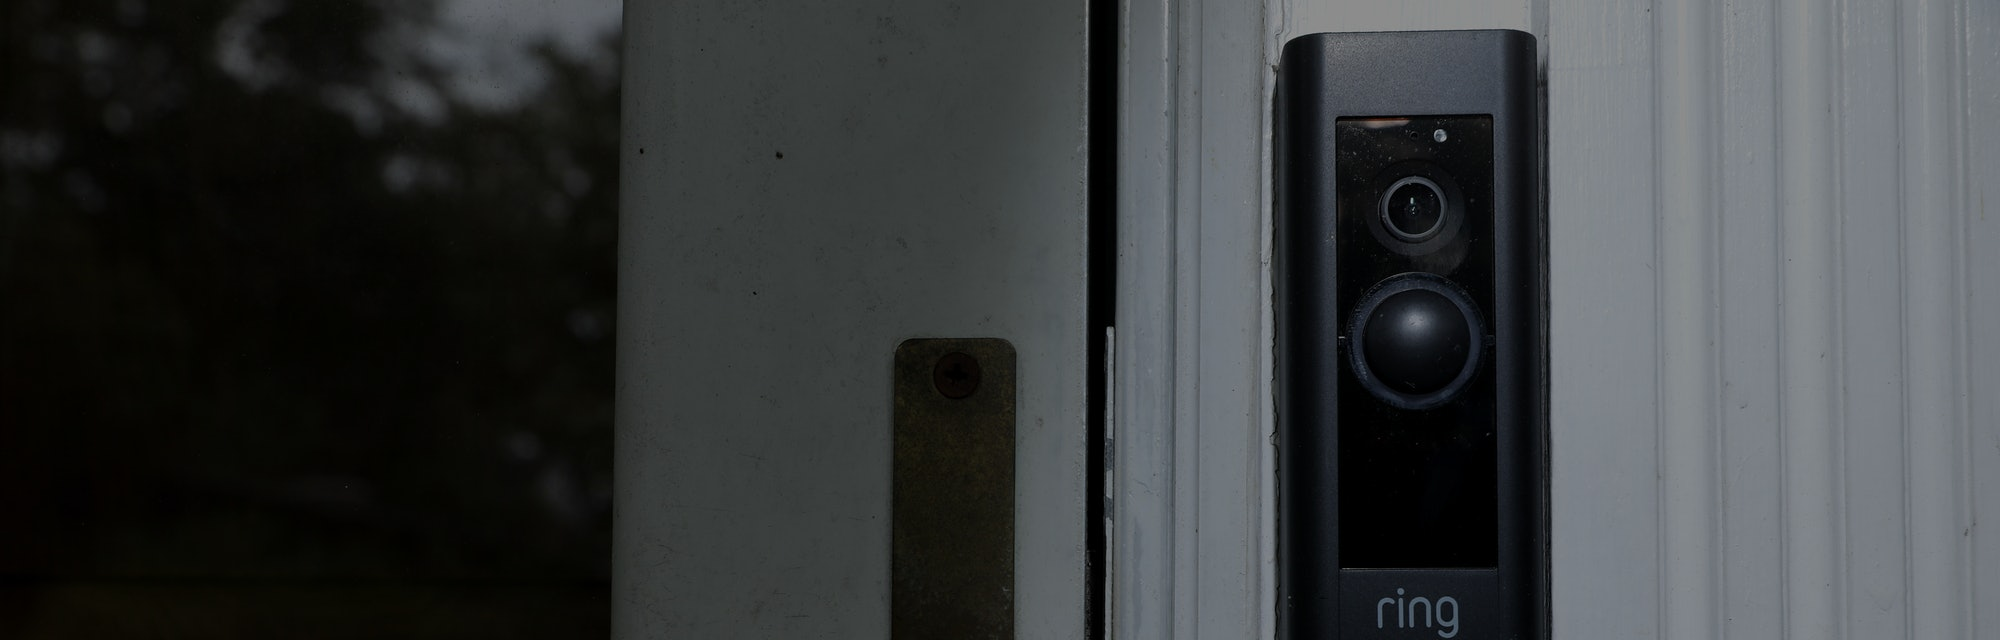 SILVER SPRING, MARYLAND - AUGUST 28: A doorbell device with a built-in camera made by home security ...